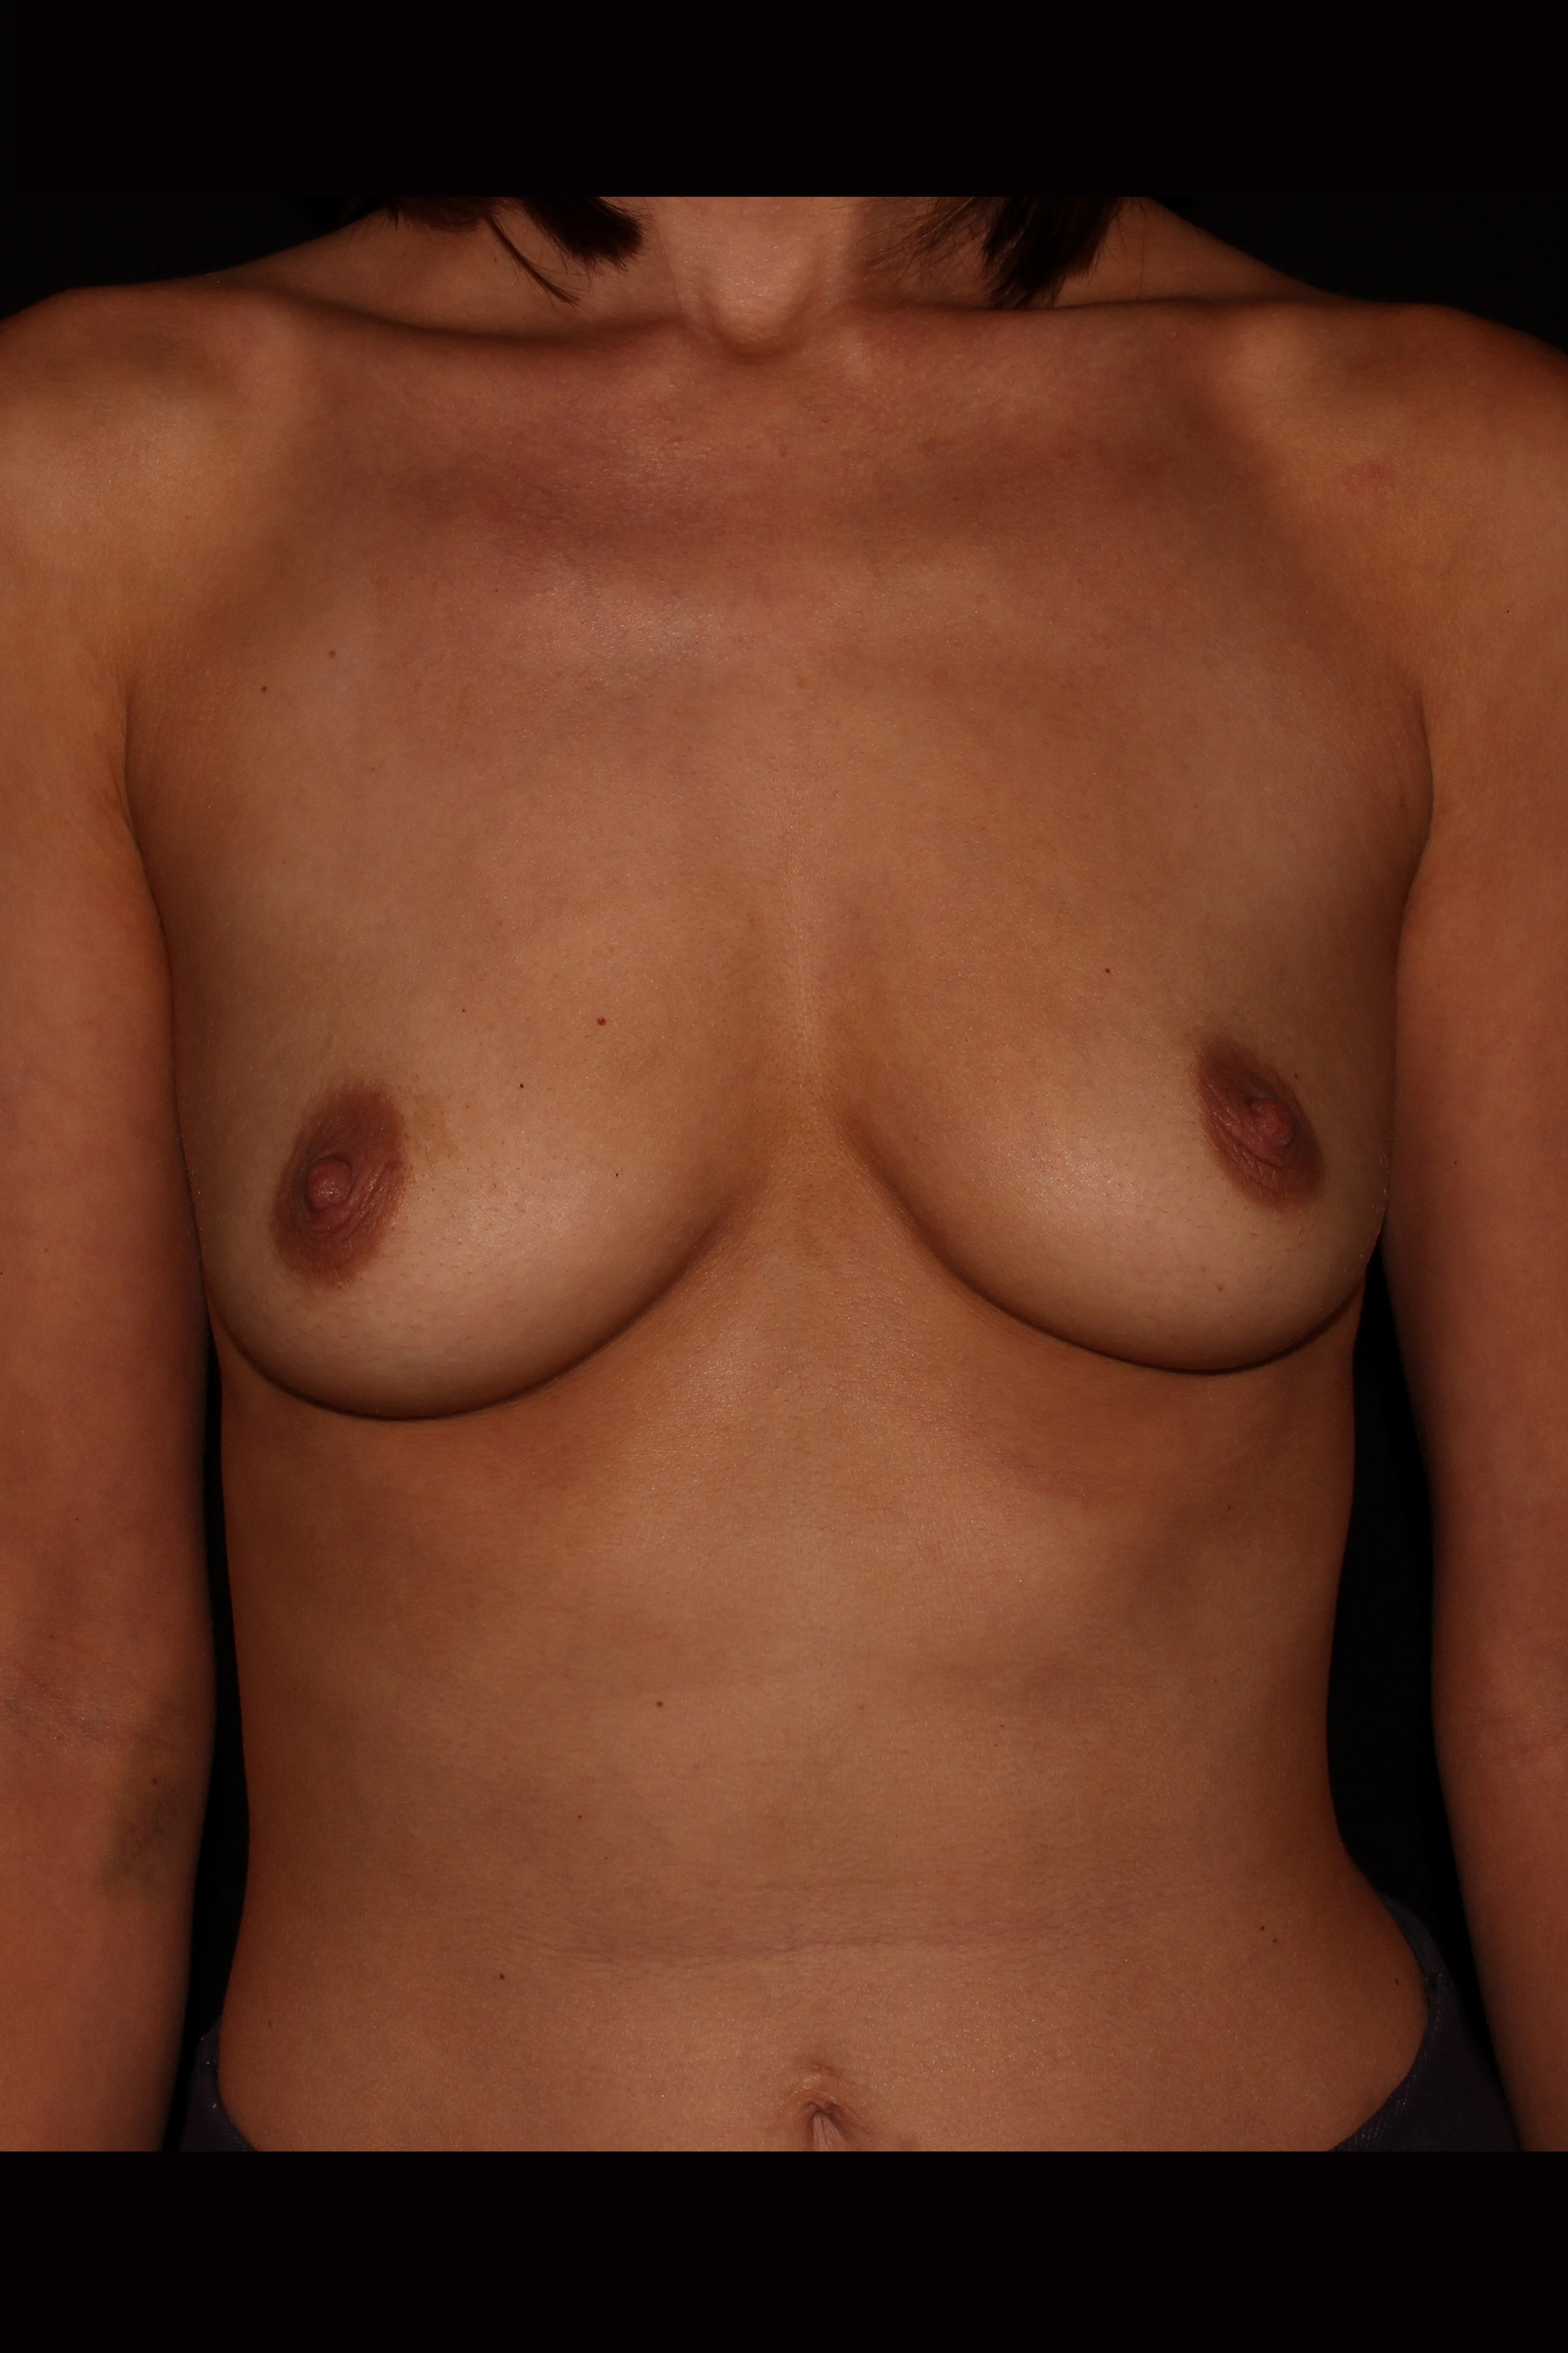 Before Breast Augmentation - 455cc moderate profile silicone implants